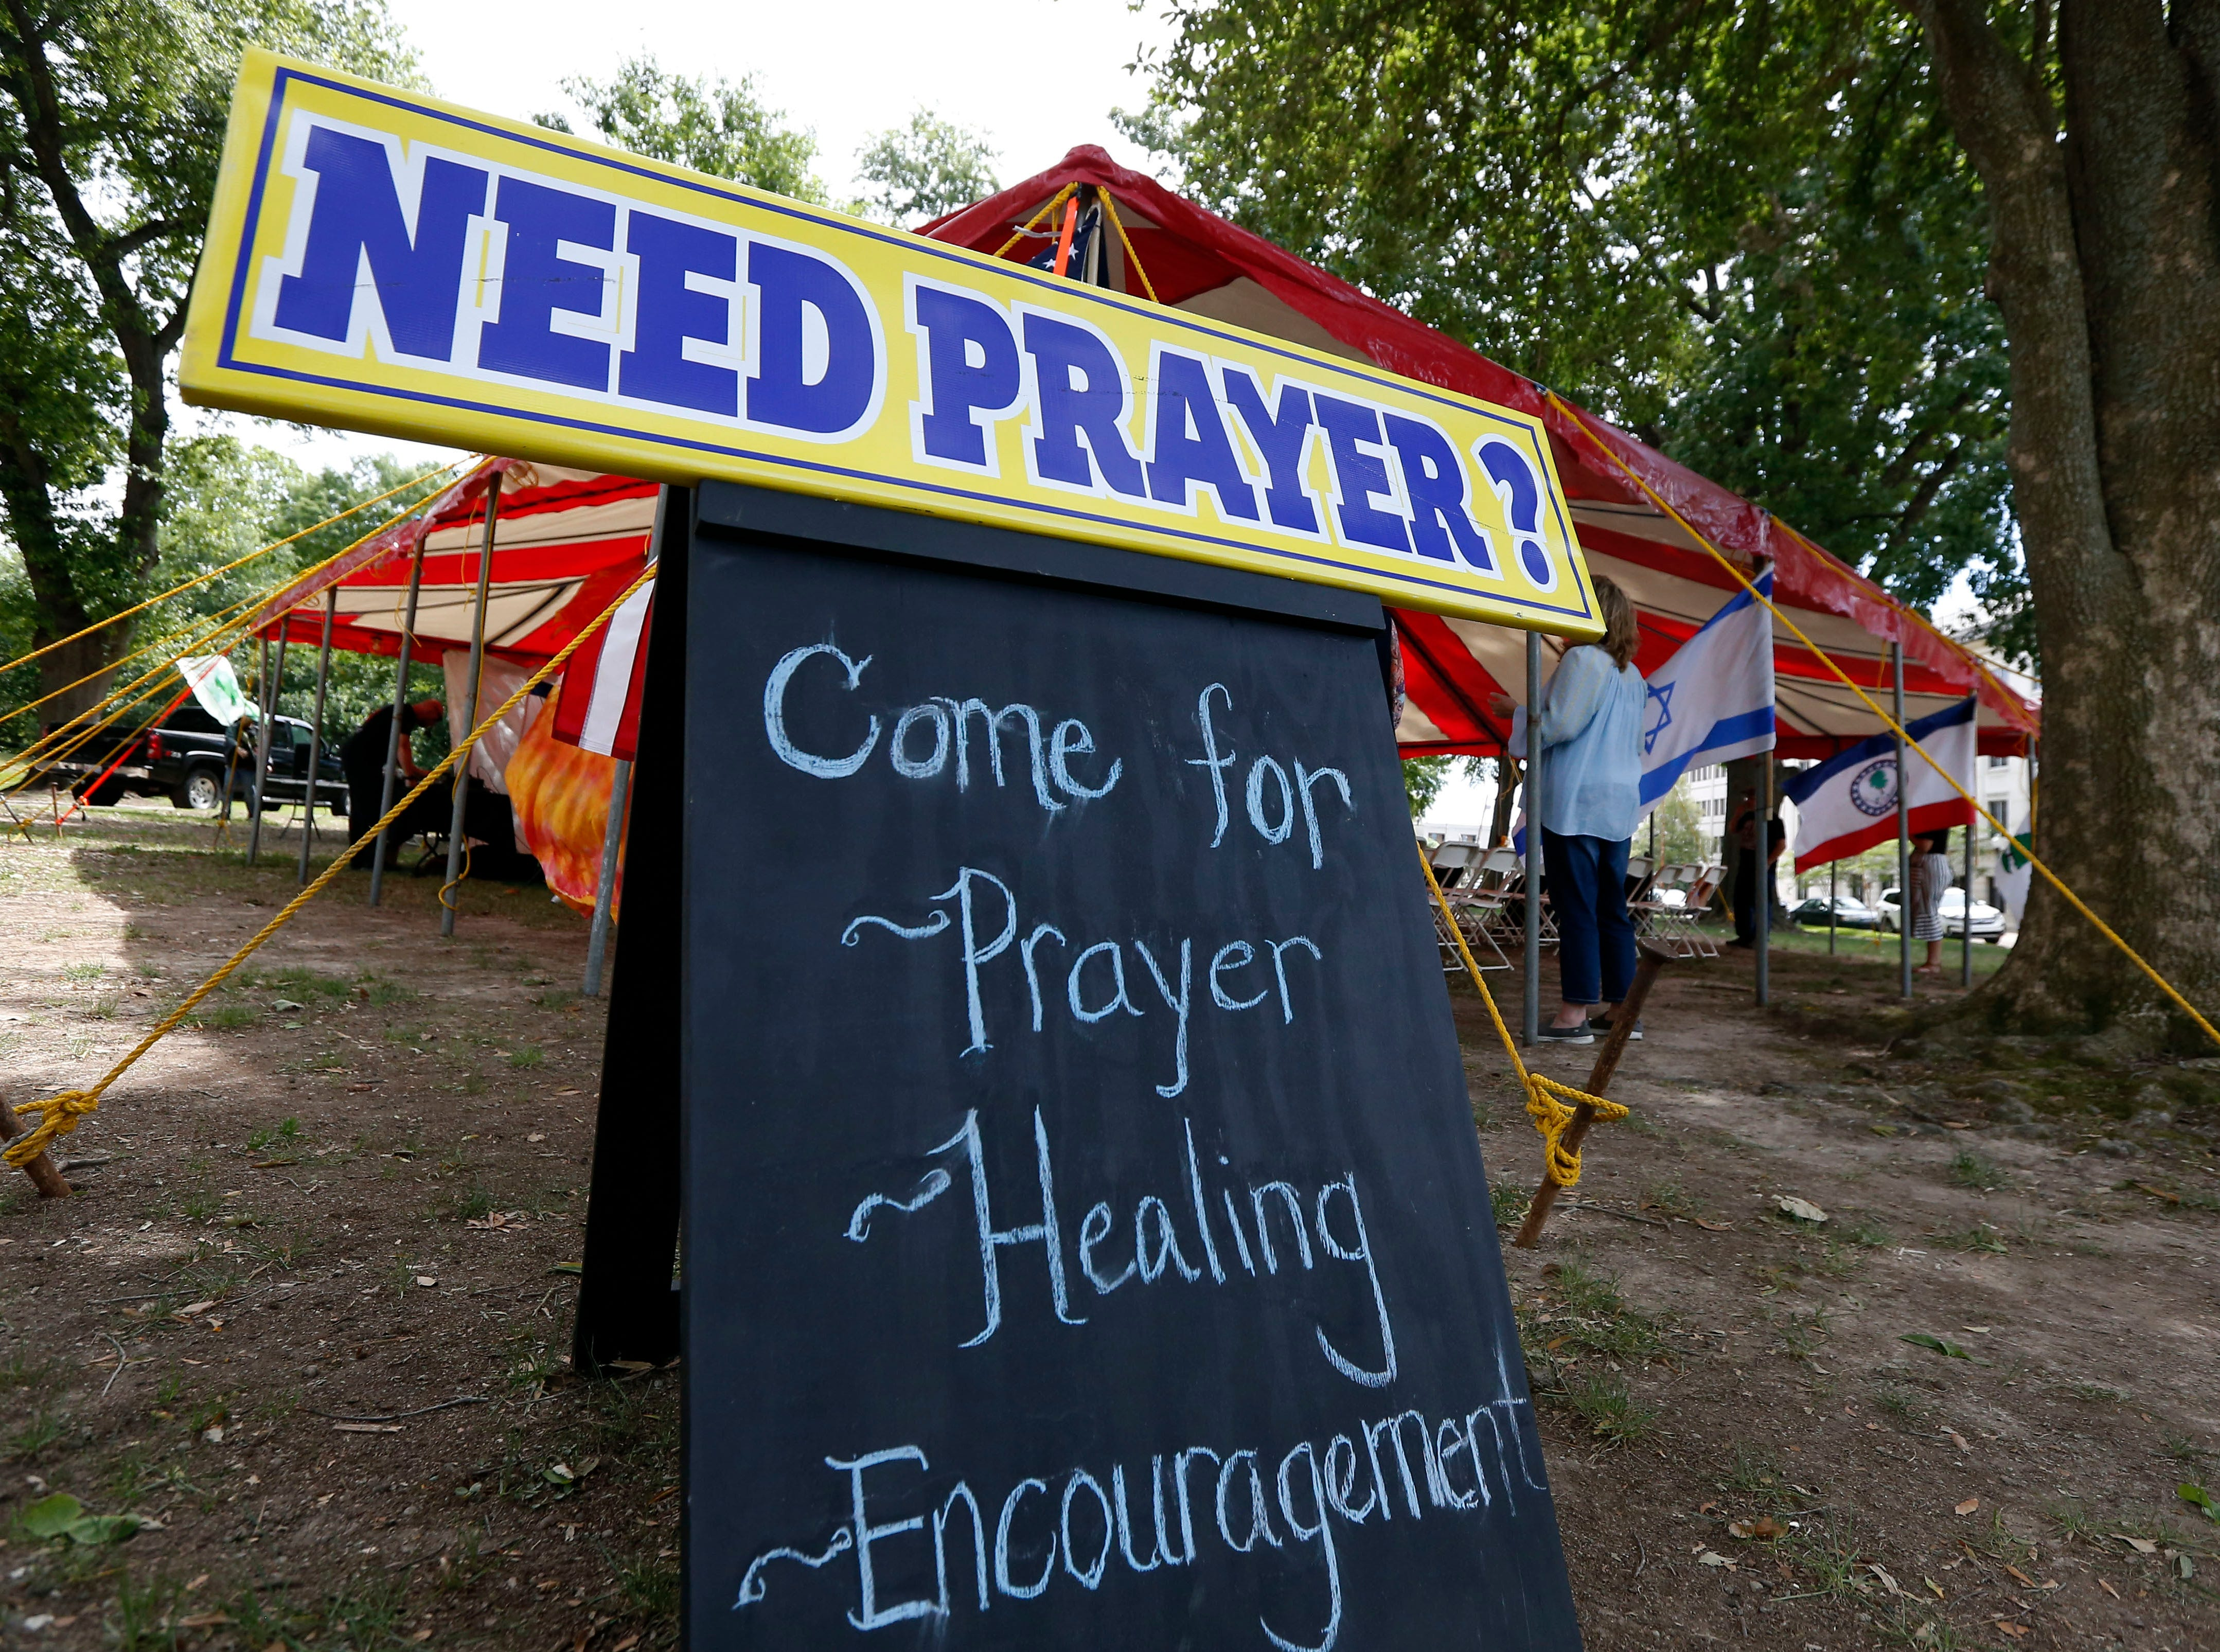 A worshiper enters a prayer tent on the grounds of the state Capitol in Jackson, Miss., Thursday, May 2, 2019, during the National Day of Prayer. The annual day of observance is held on the first Thursday of May, designated by the United States Congress, and calling on people of faith to pray for the nation and its leaders. (AP Photo/Rogelio V. Solis)